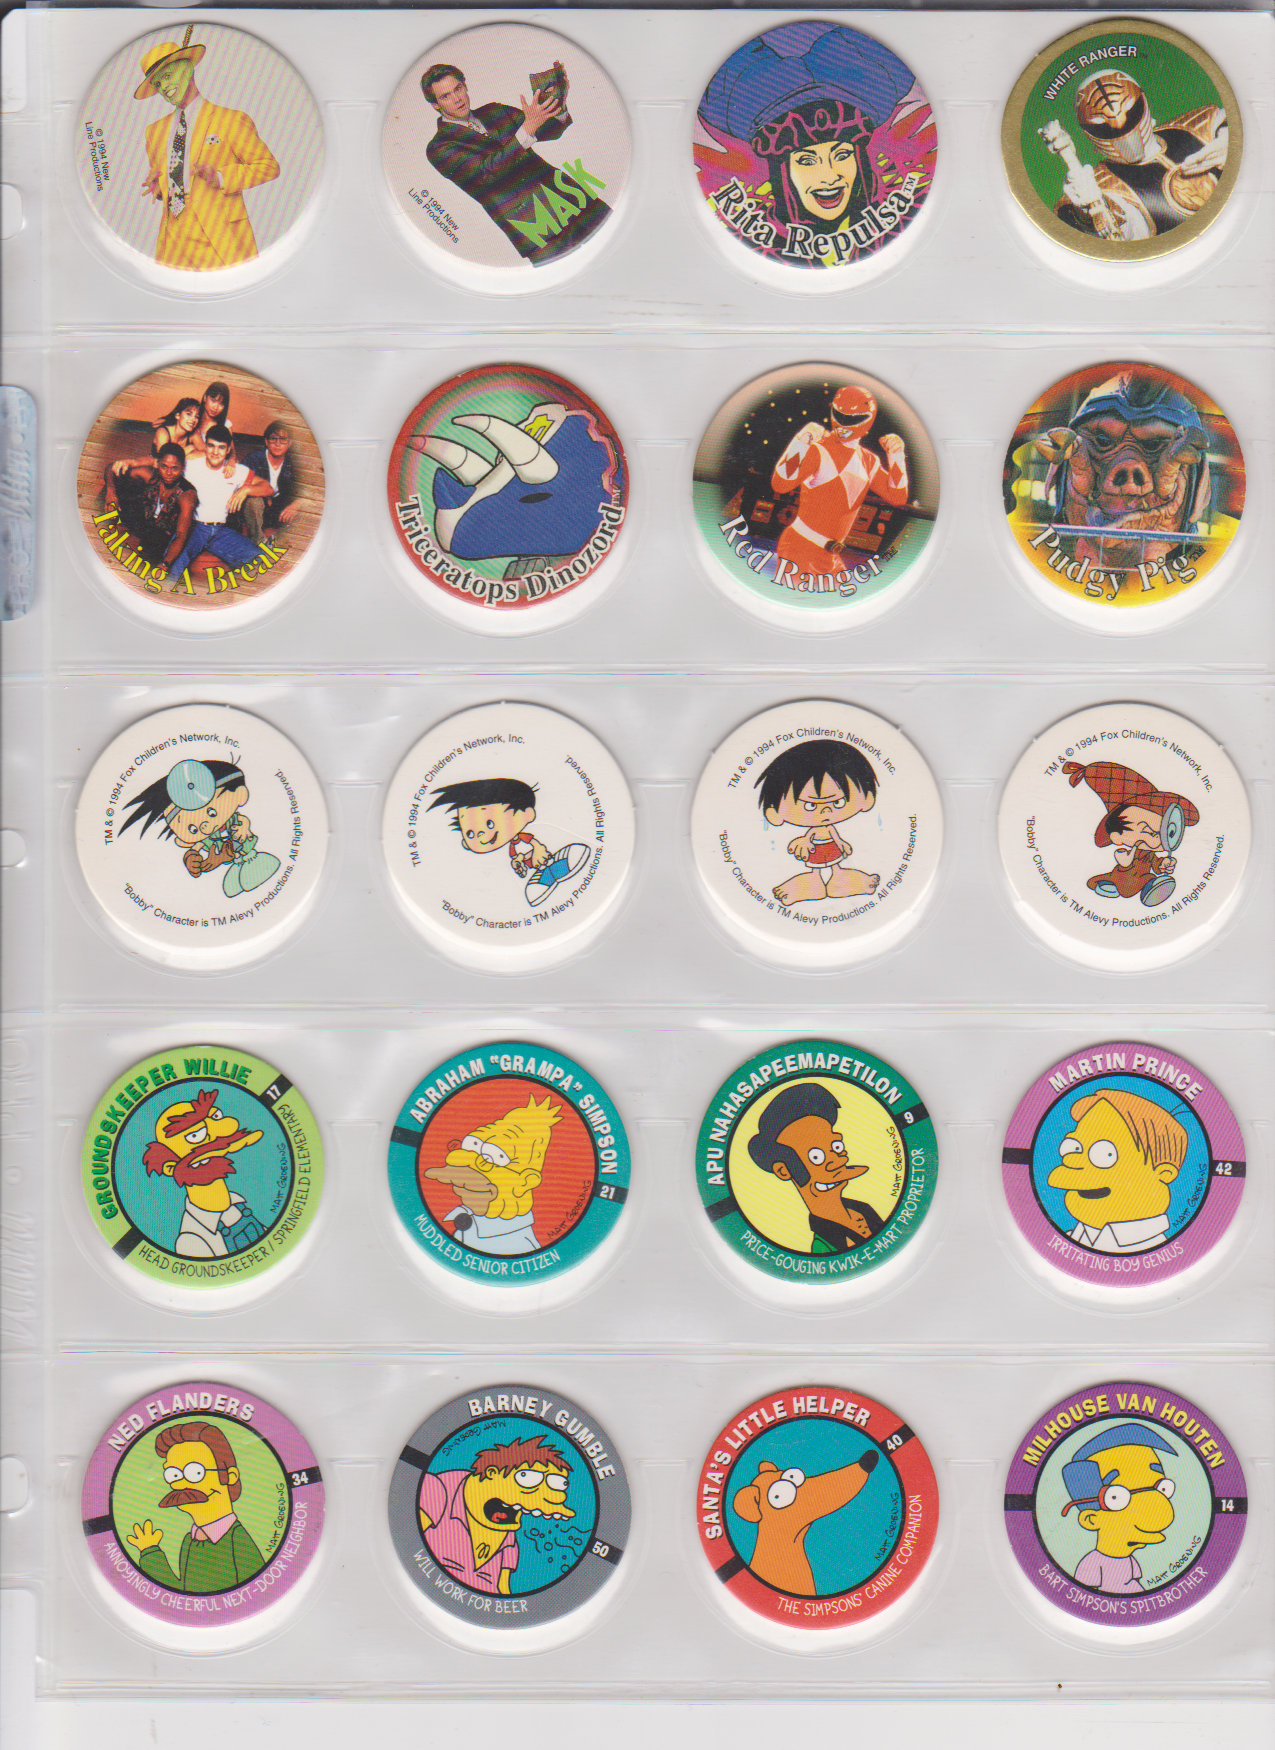 This Totally Sick 1990s Pogs Collection – THE SURFING PIZZA